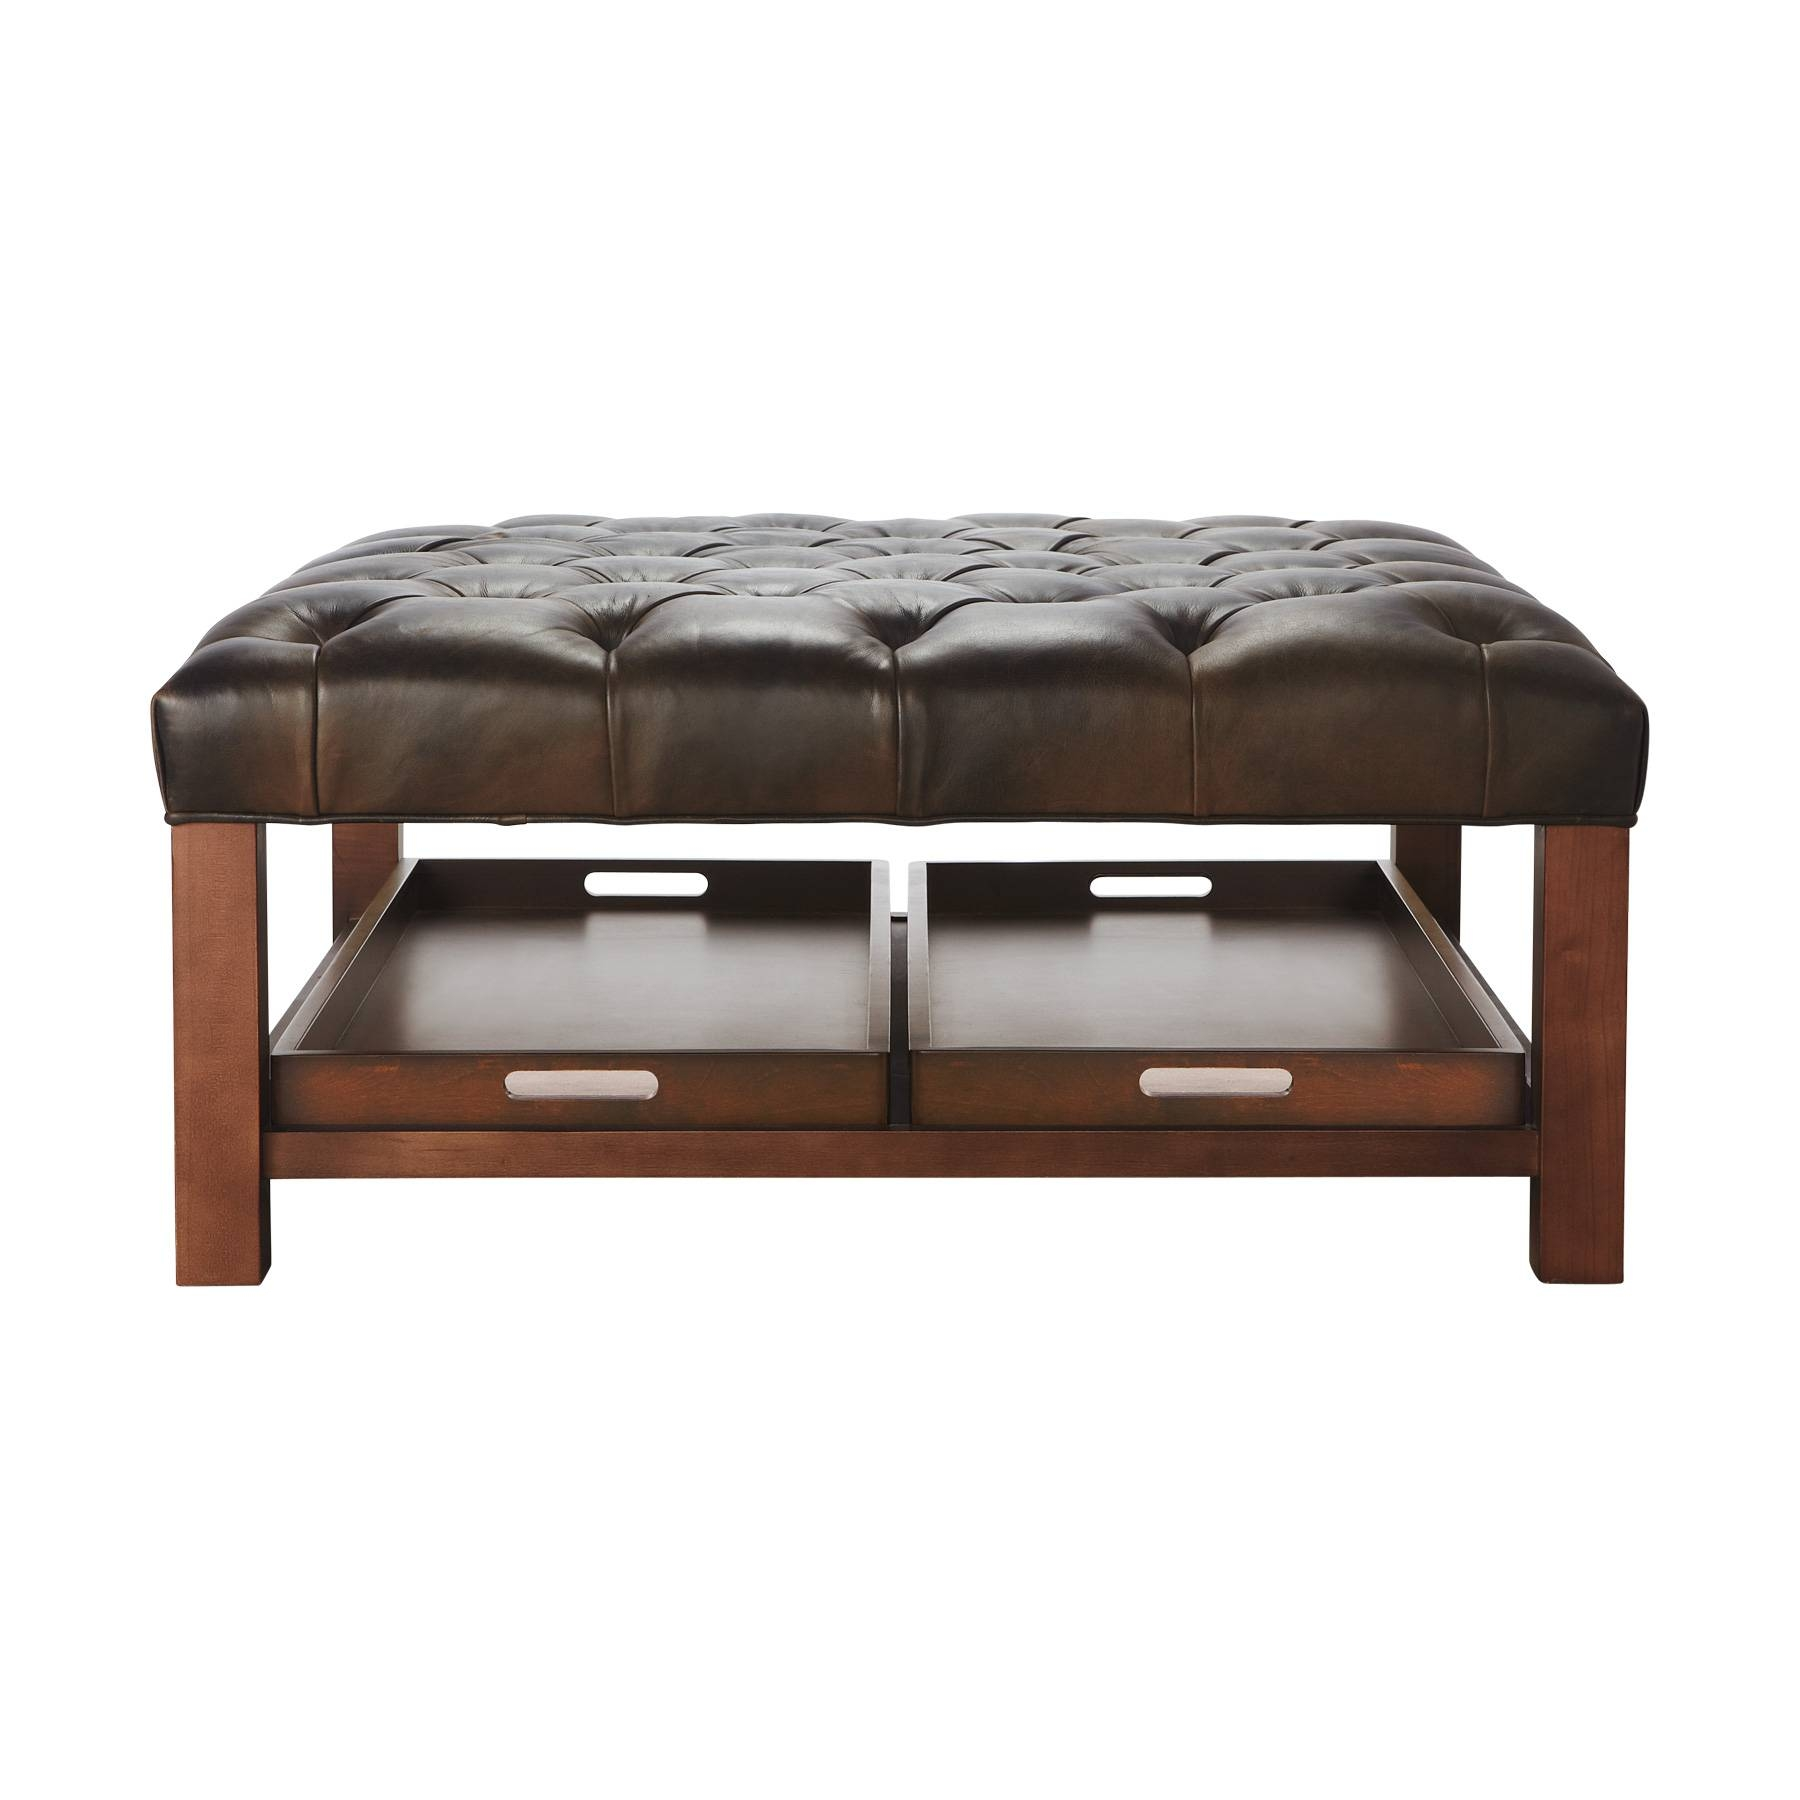 Leather Coffee Table With Storage And Trays | Coffee Tables Decoration In Square Coffee Tables With Storages (View 18 of 30)